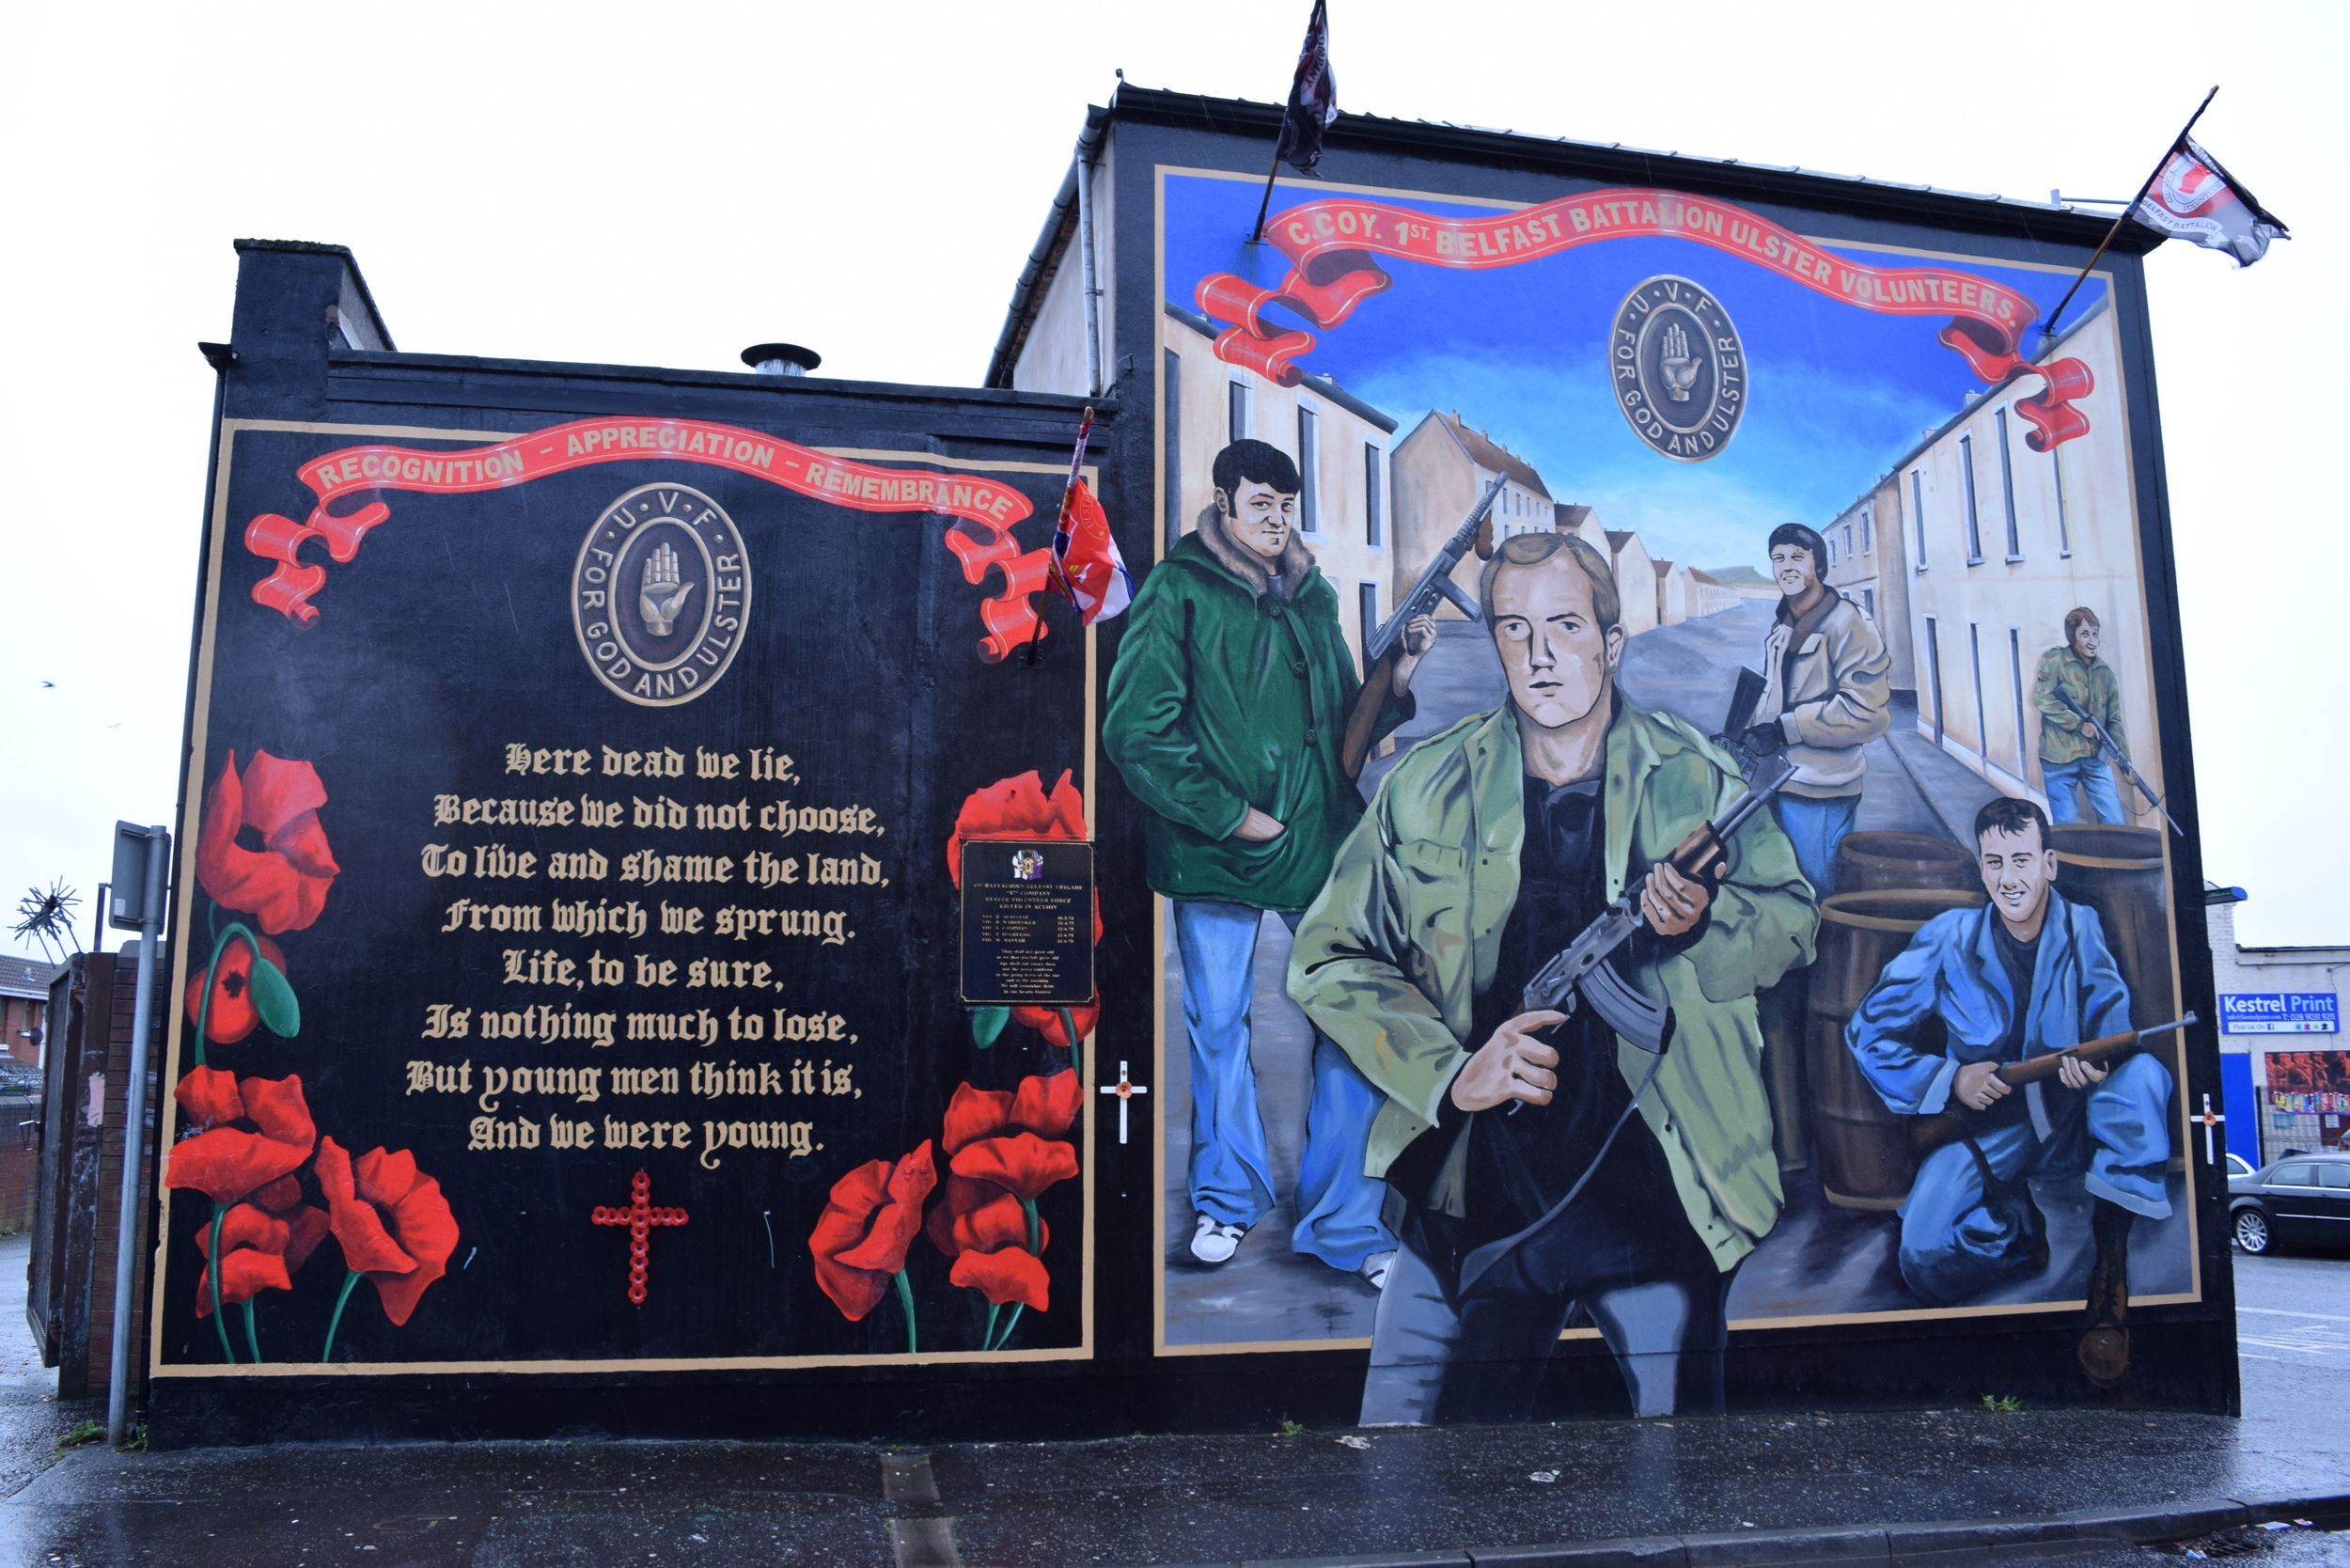 UVF memorial mural utilizing poppy imagery typically associated with World War I remembrance.